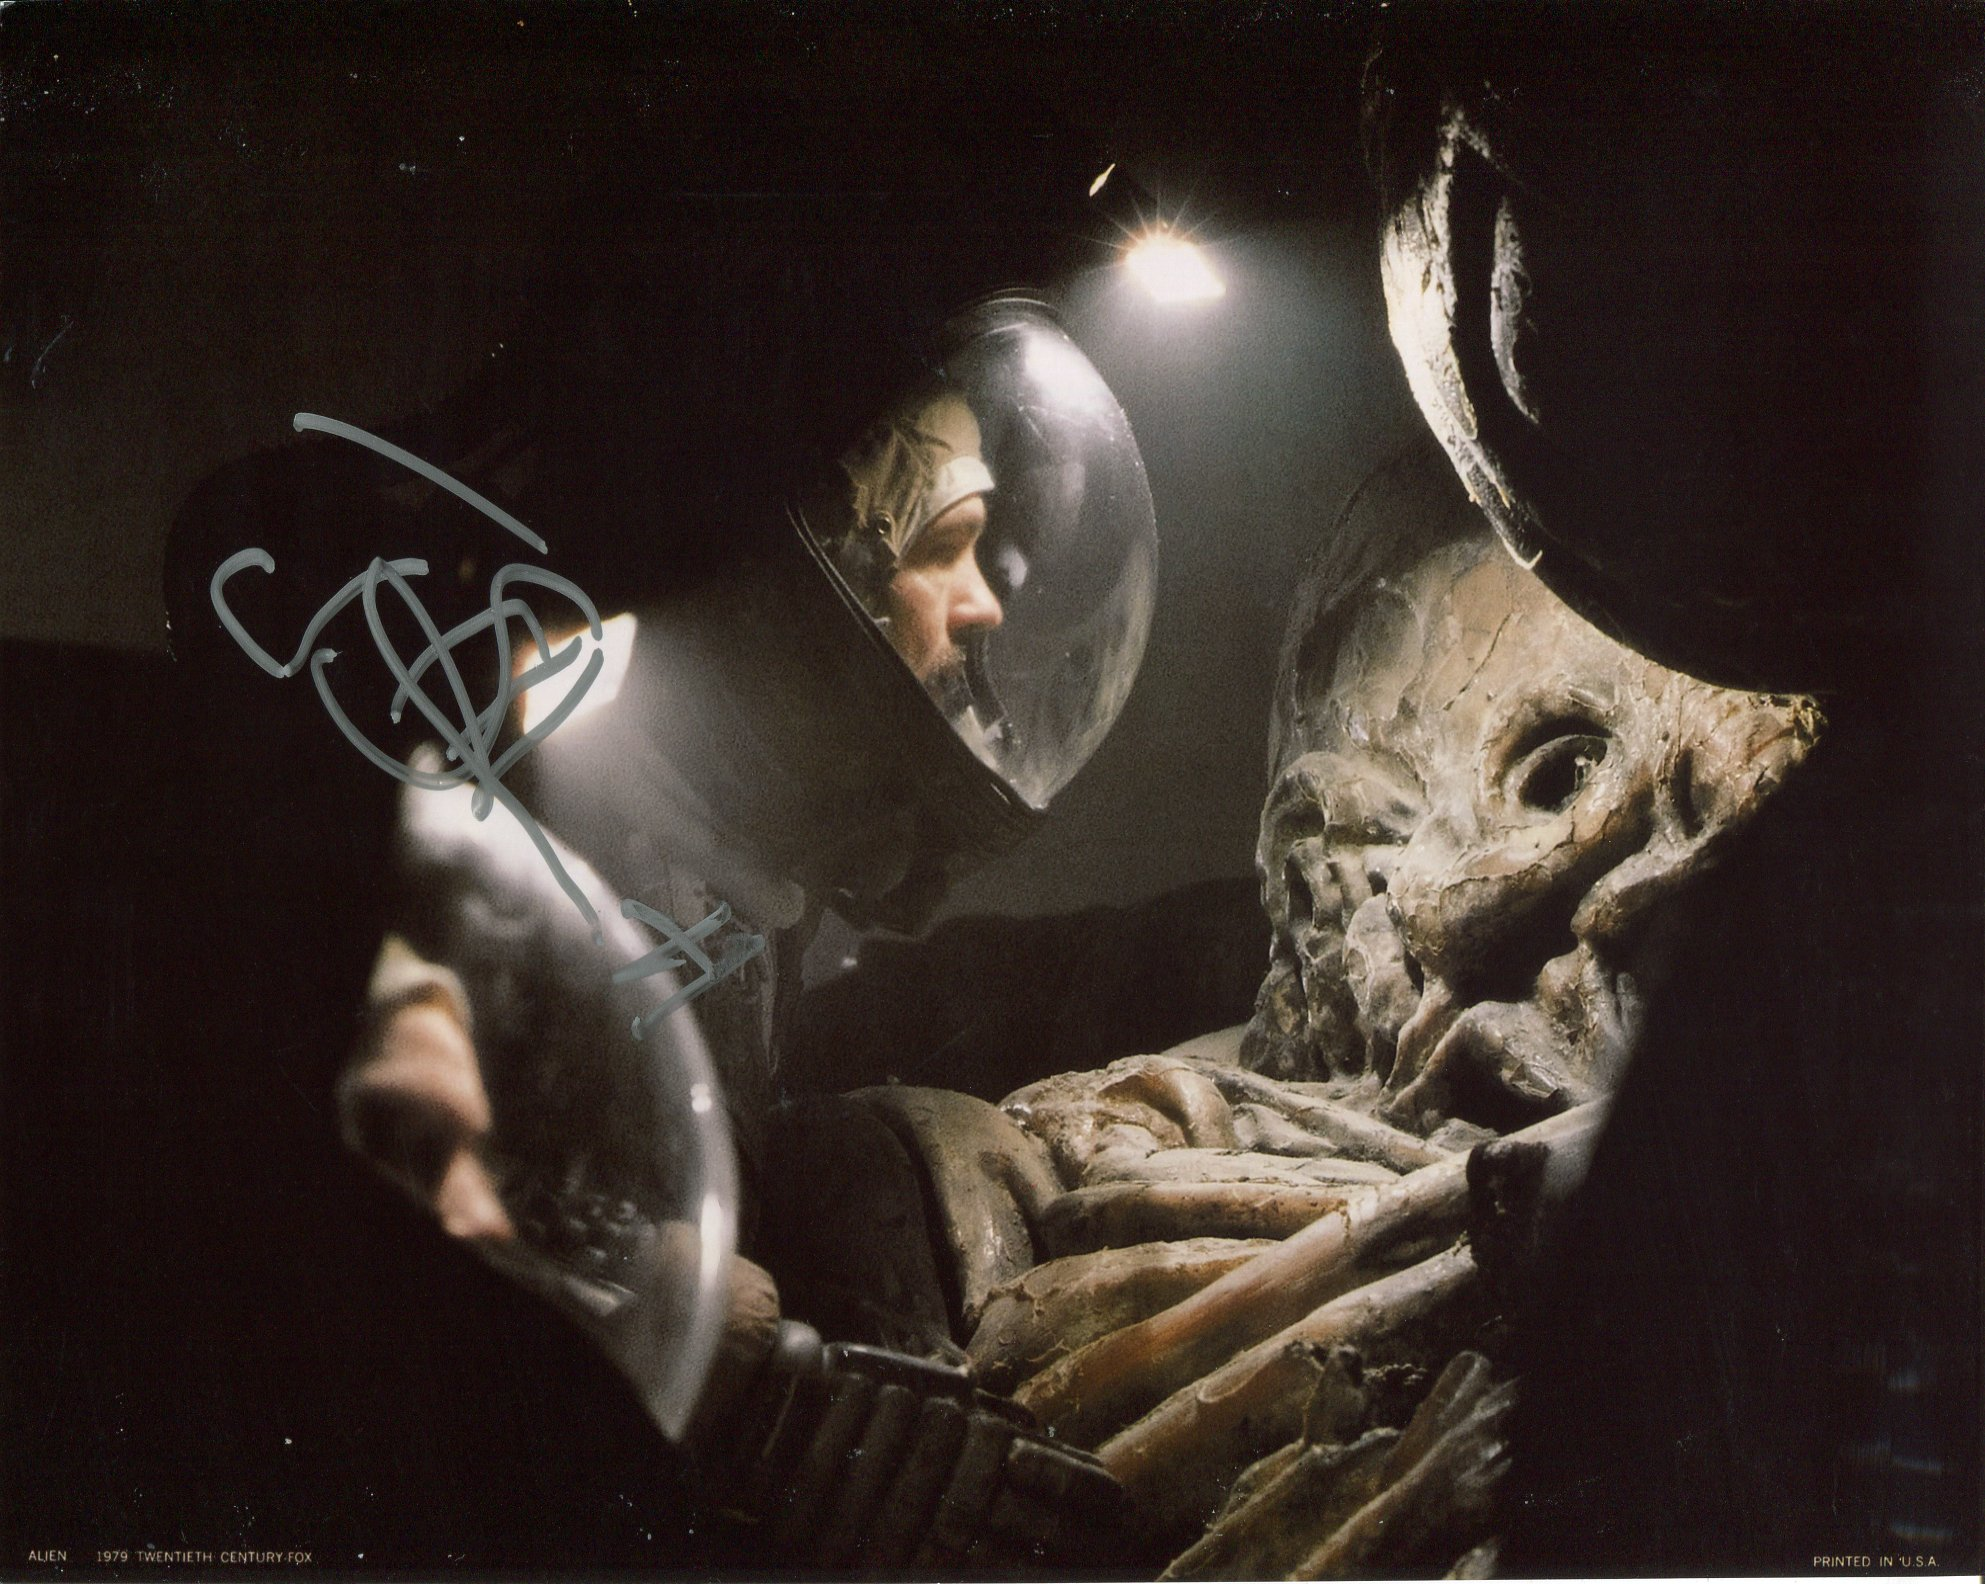 Alien. science fiction horror movie photo signed by actor Tom Skerritt as Captain Dallas. Good